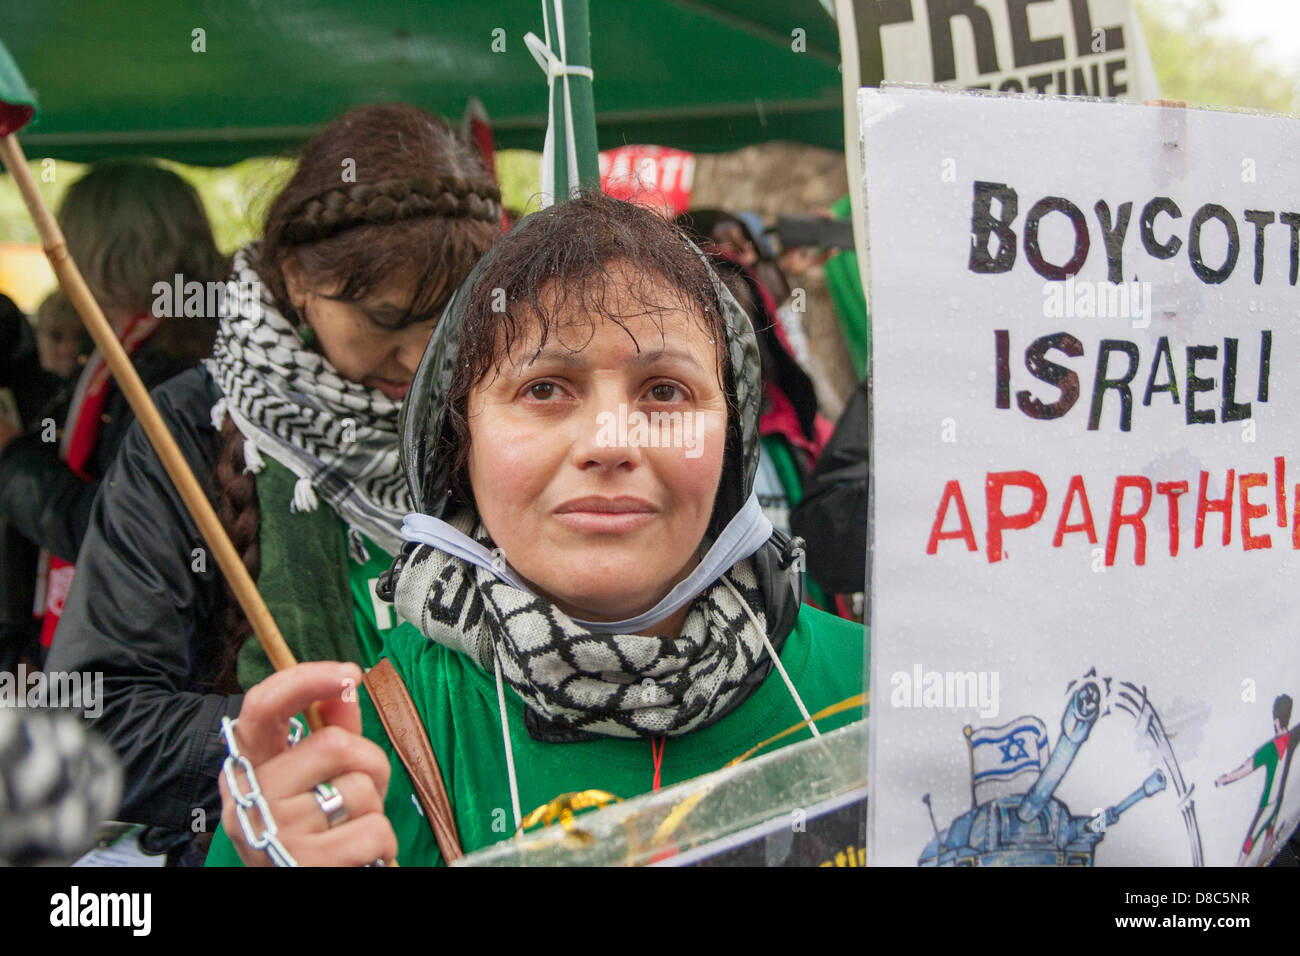 London, UK. 24th May 2013. A protester demonstrates outside the UEFA congress in London demanding that Israel is - Stock Image